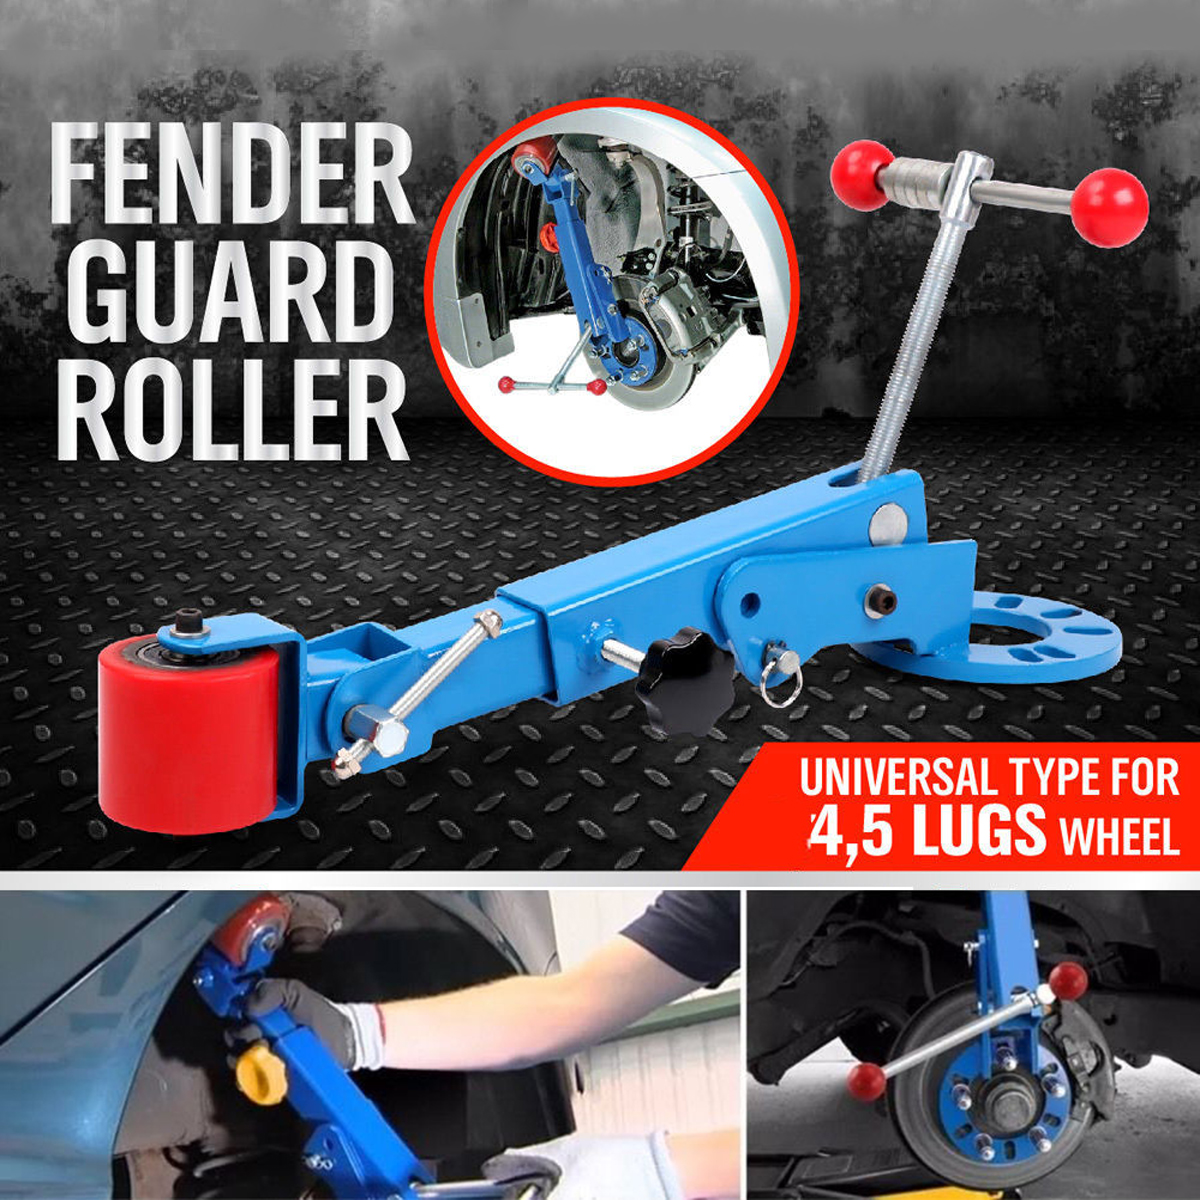 Roll for Fender Reforming Extending Tool Wheel Arch Roller Flaring Former Heavy Duty Woodworking Machinery Parts